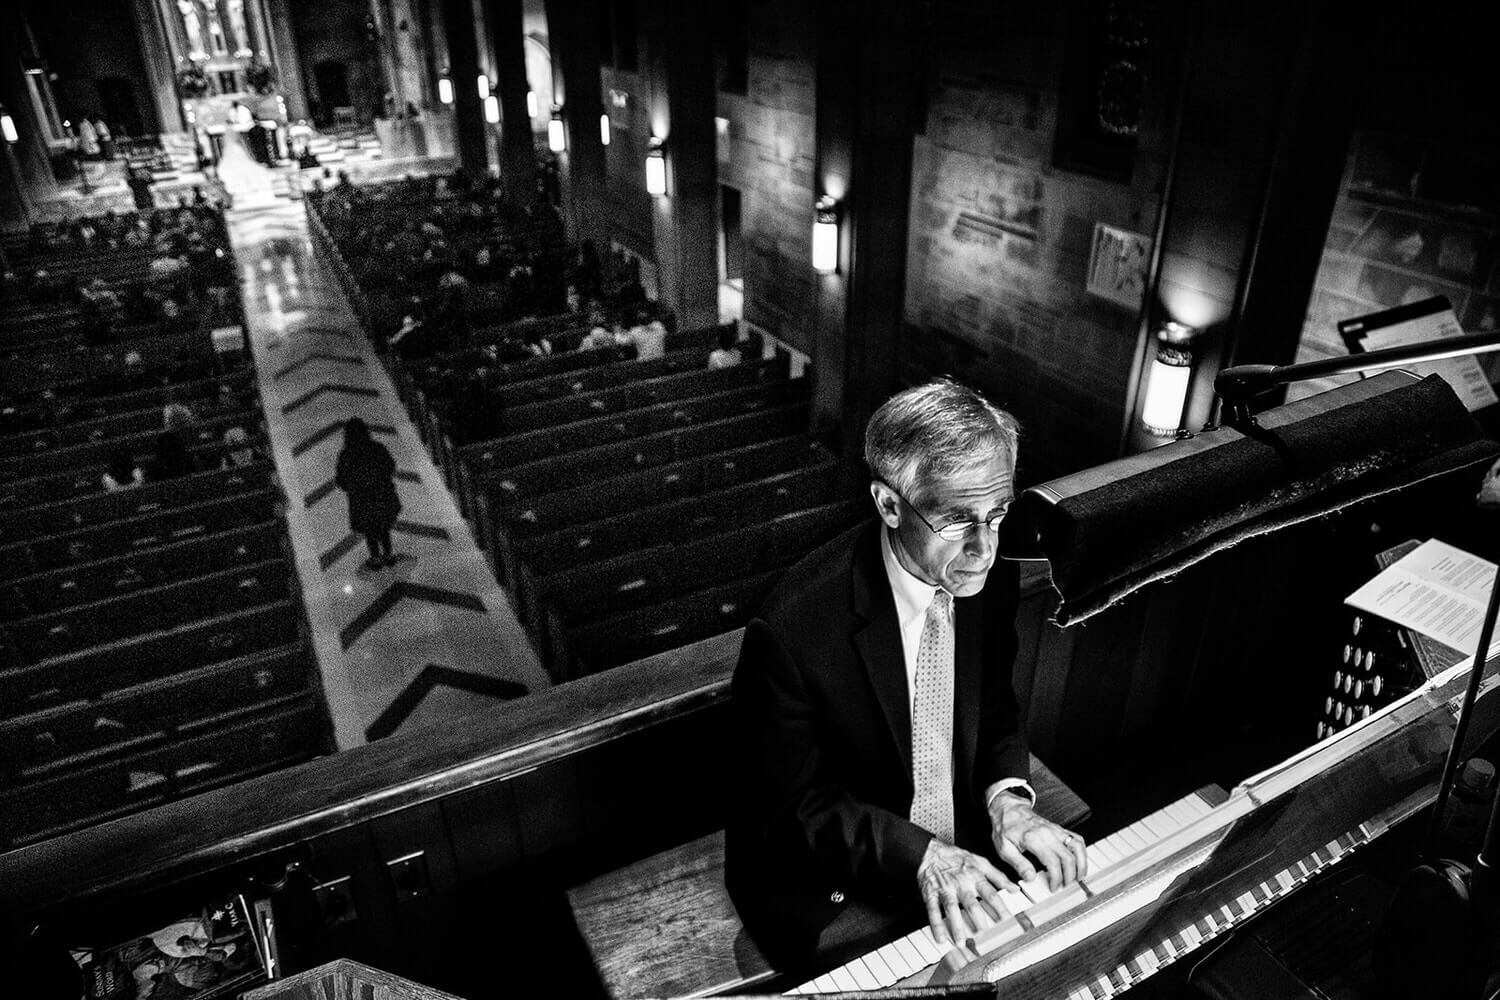 Cathedral of Christ the King organist Tim Wissler